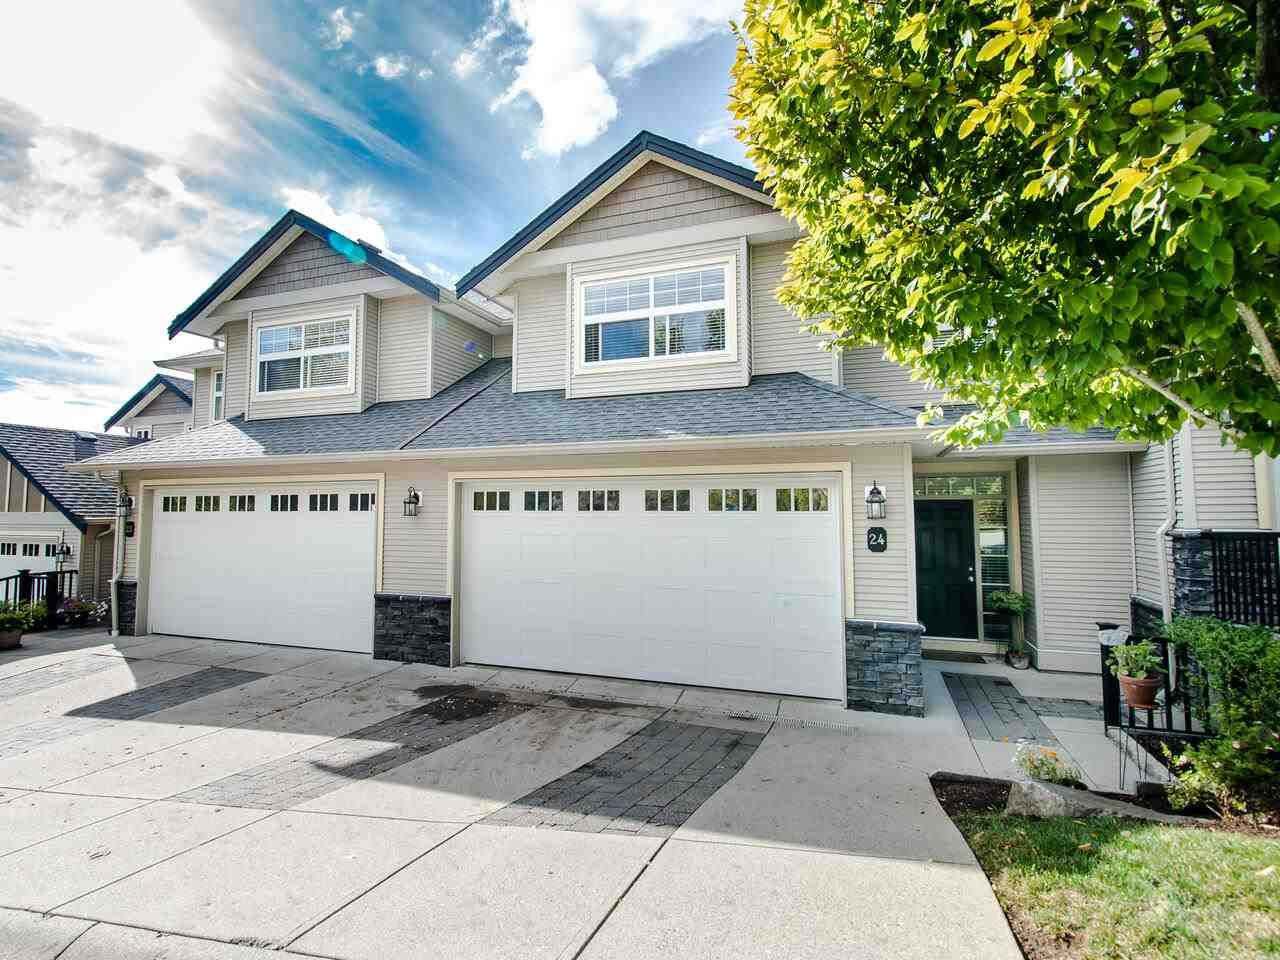 """Main Photo: 24 36260 MCKEE Road in Abbotsford: Abbotsford East Townhouse for sale in """"King's Gate"""" : MLS®# R2501750"""